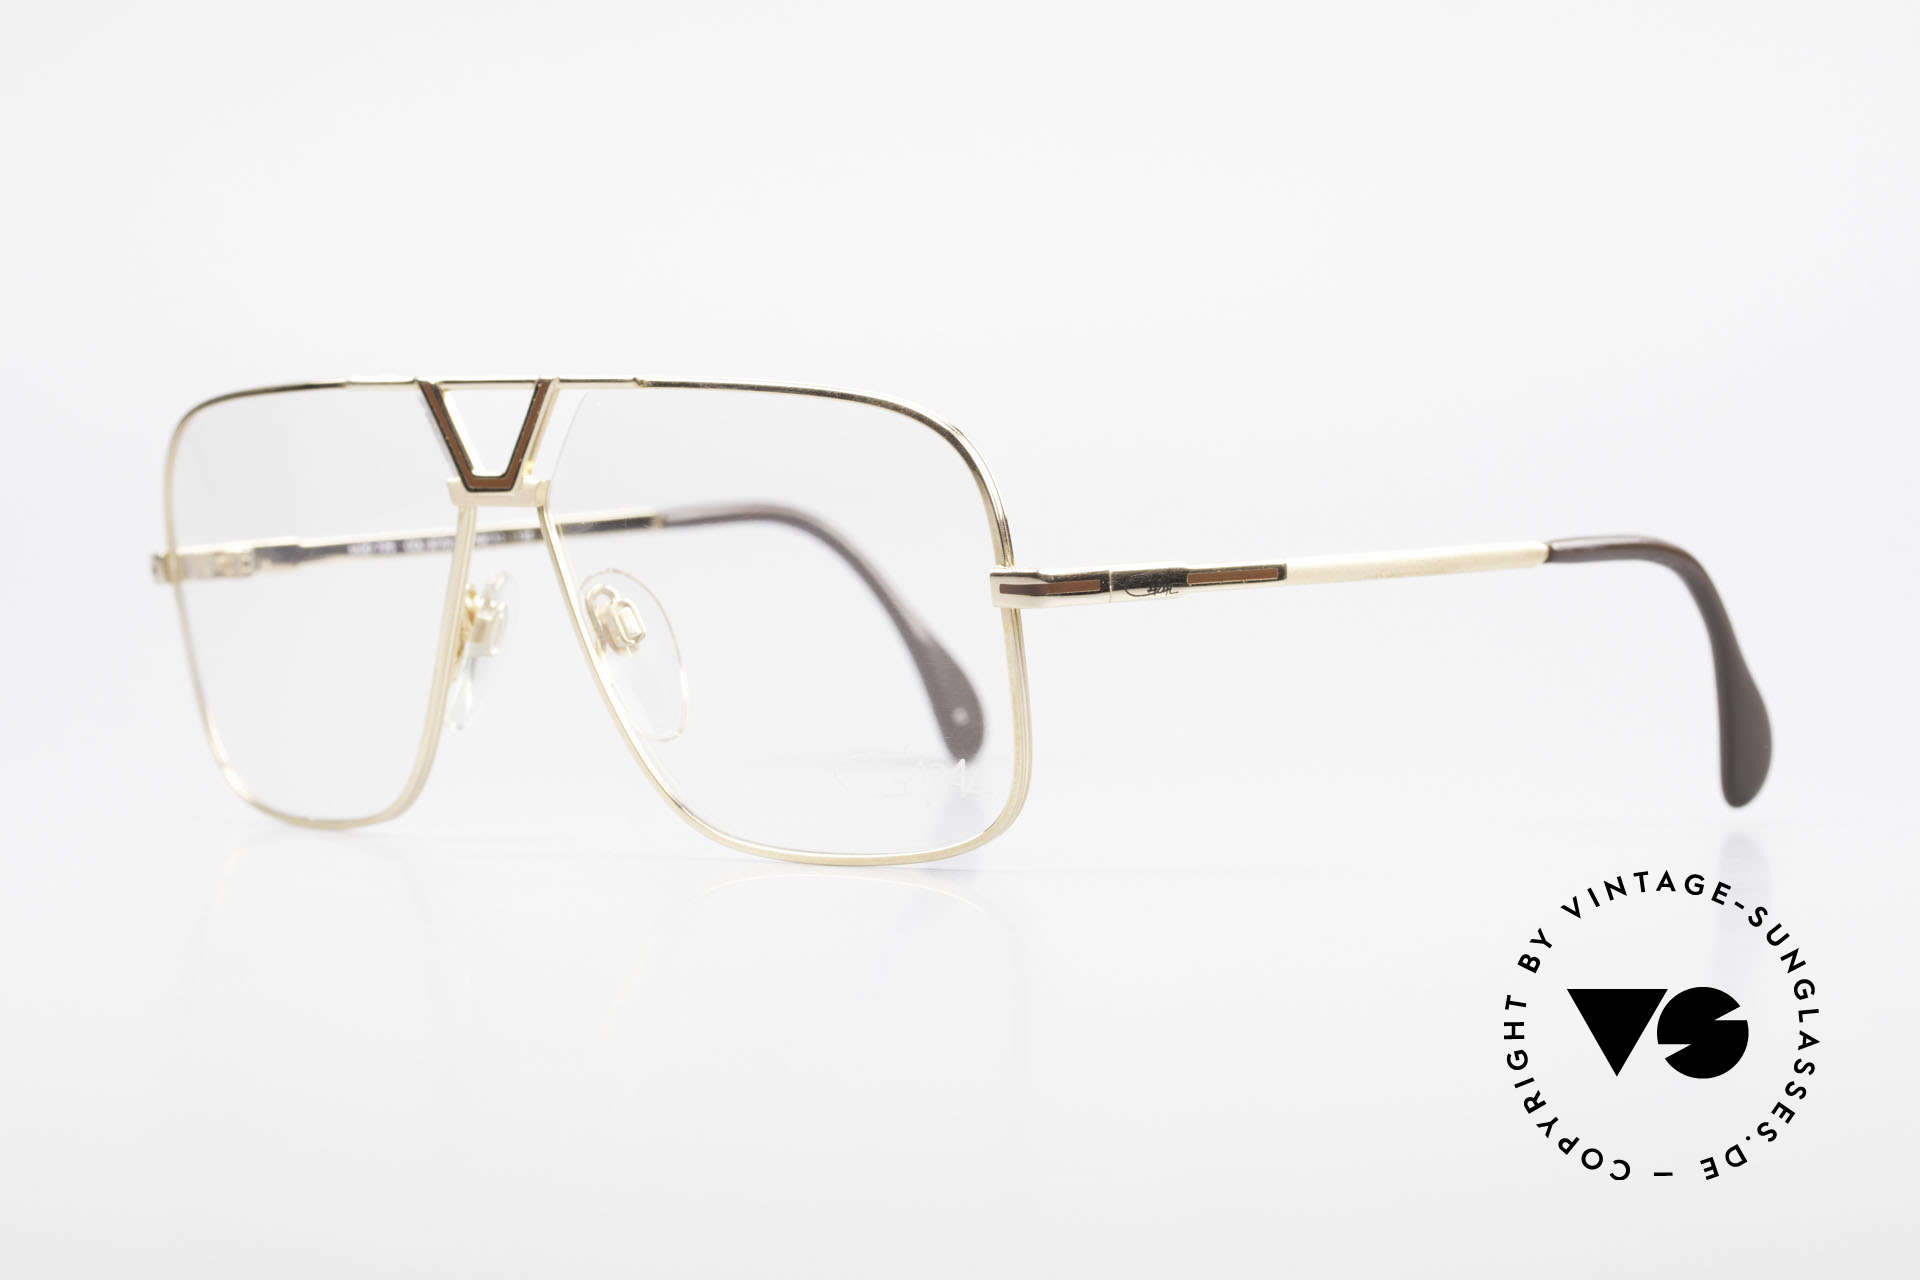 Cazal 725 Rare Vintage 1980's Eyeglasses, 'aviator design' interpreted by CAri ZALloni, Made for Men